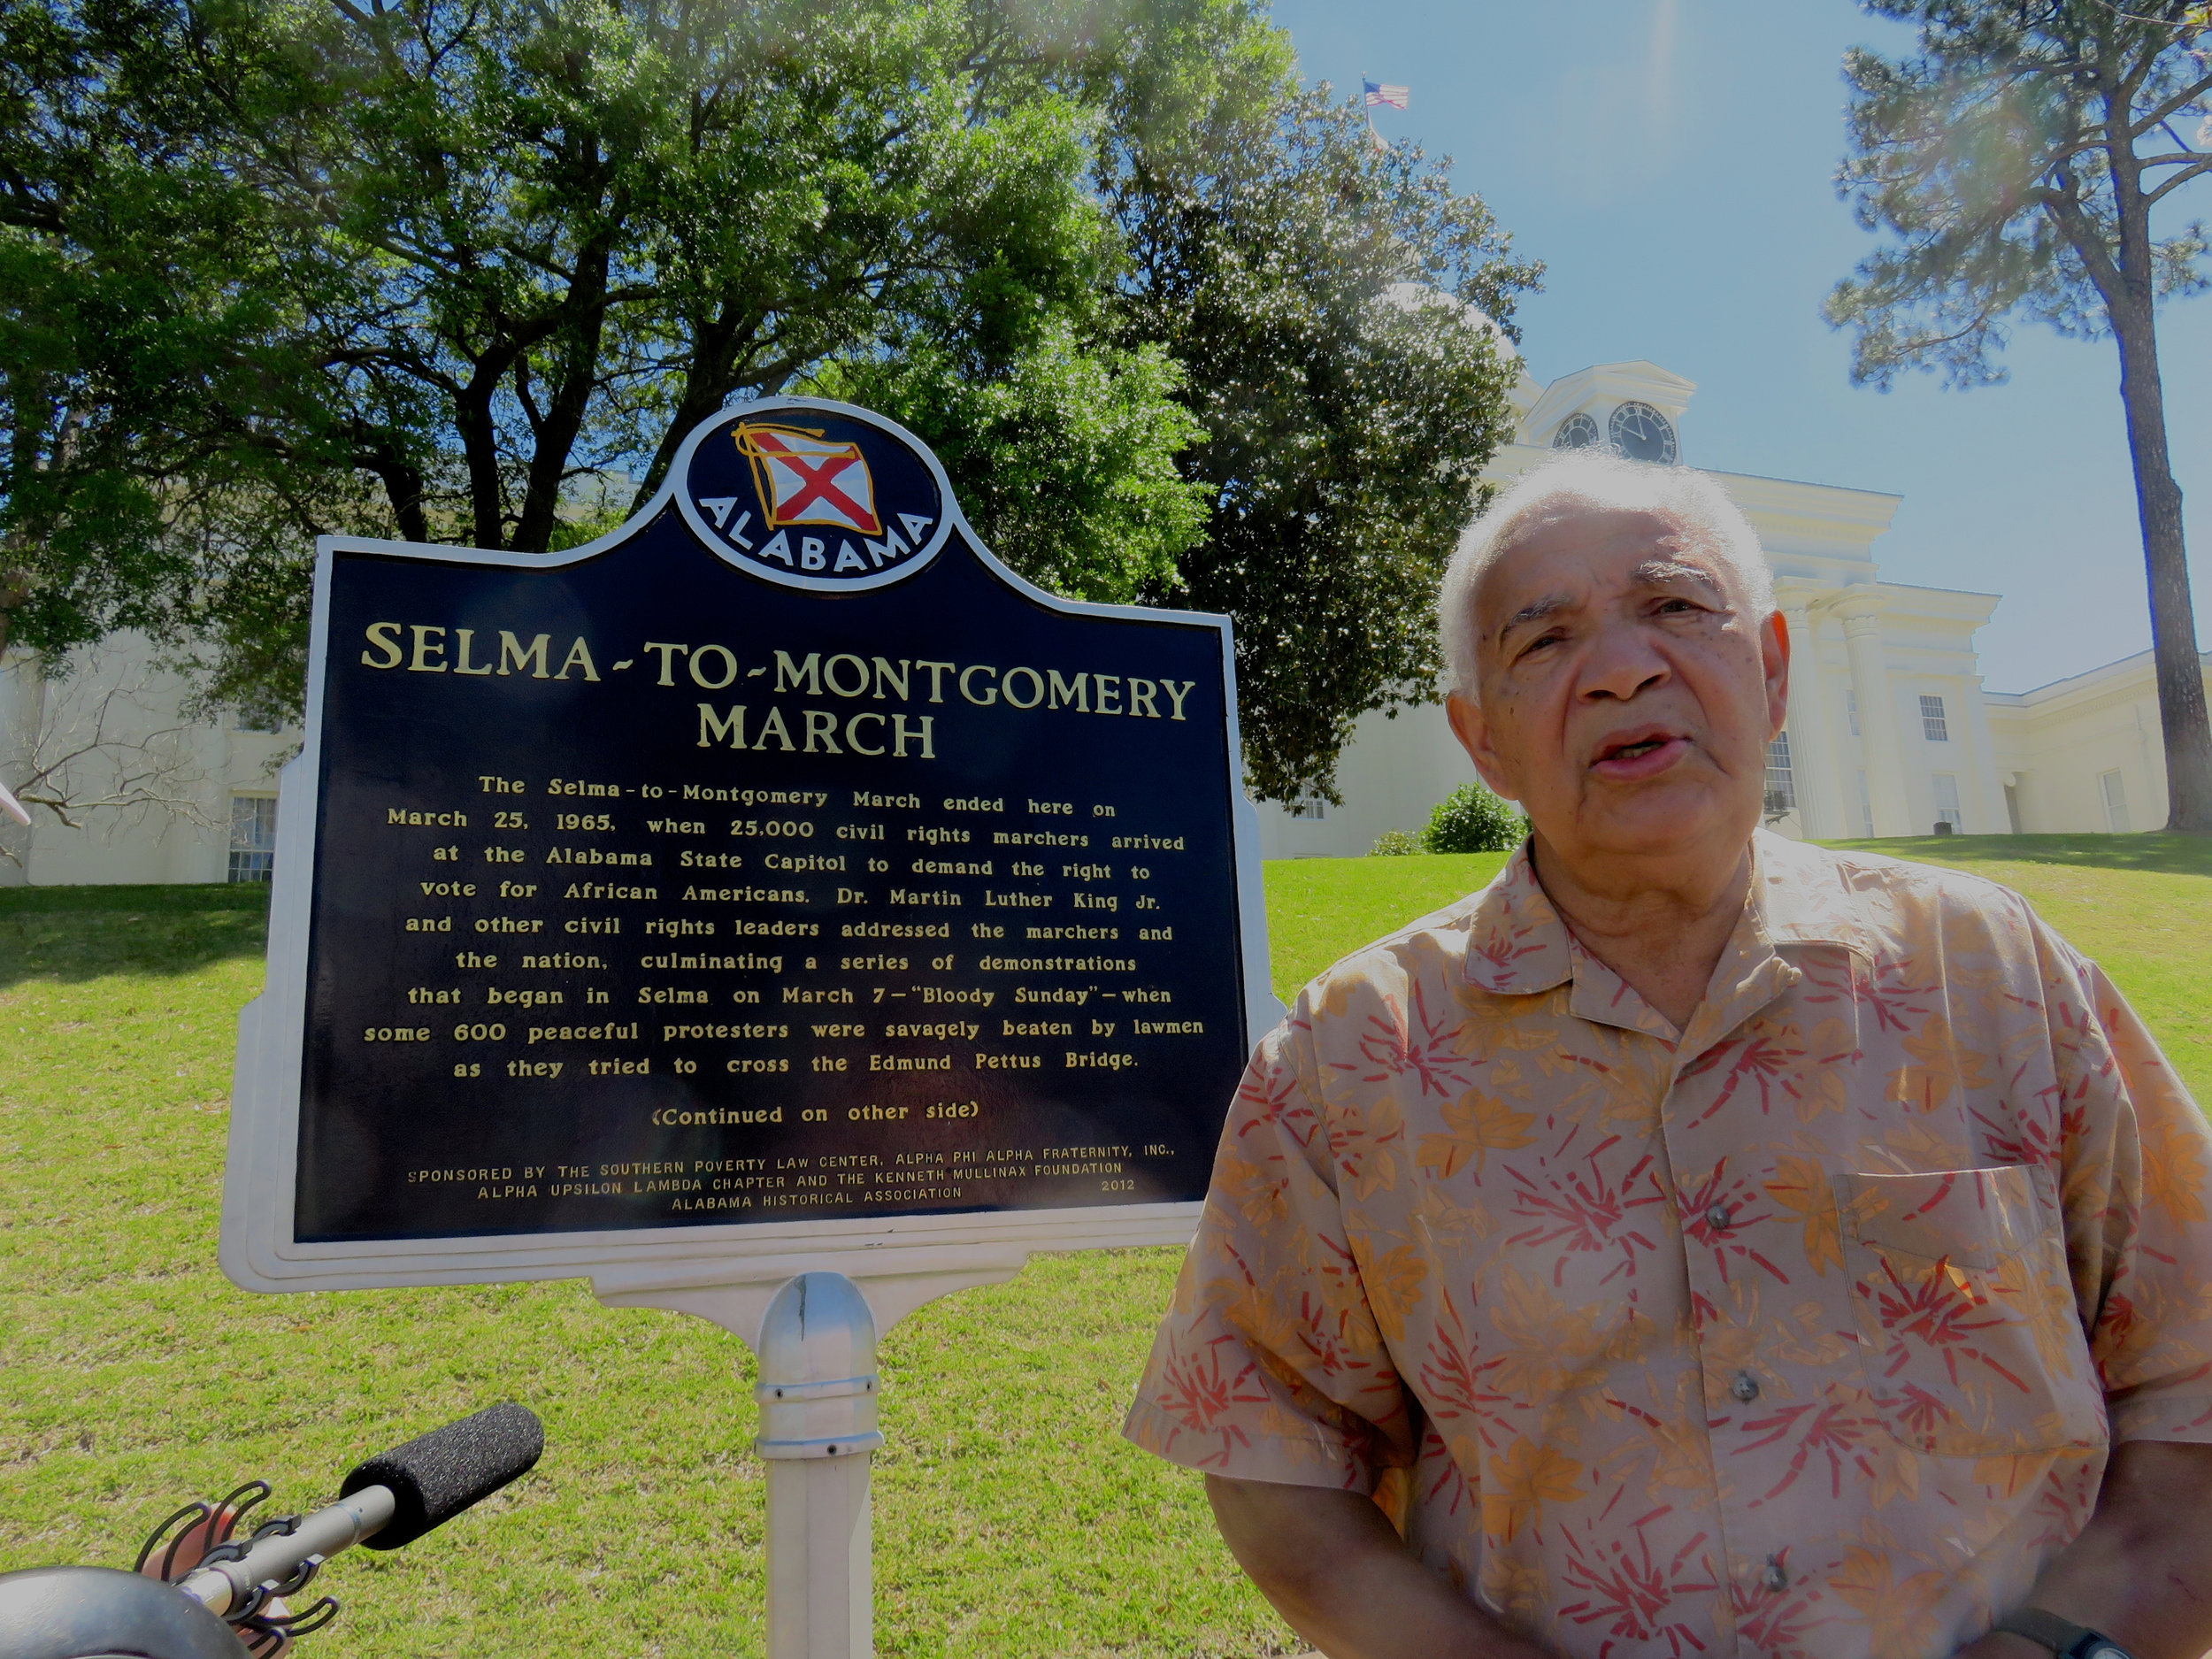 2017-4 Nelson Malden in front of statehouse and plaque.jpg